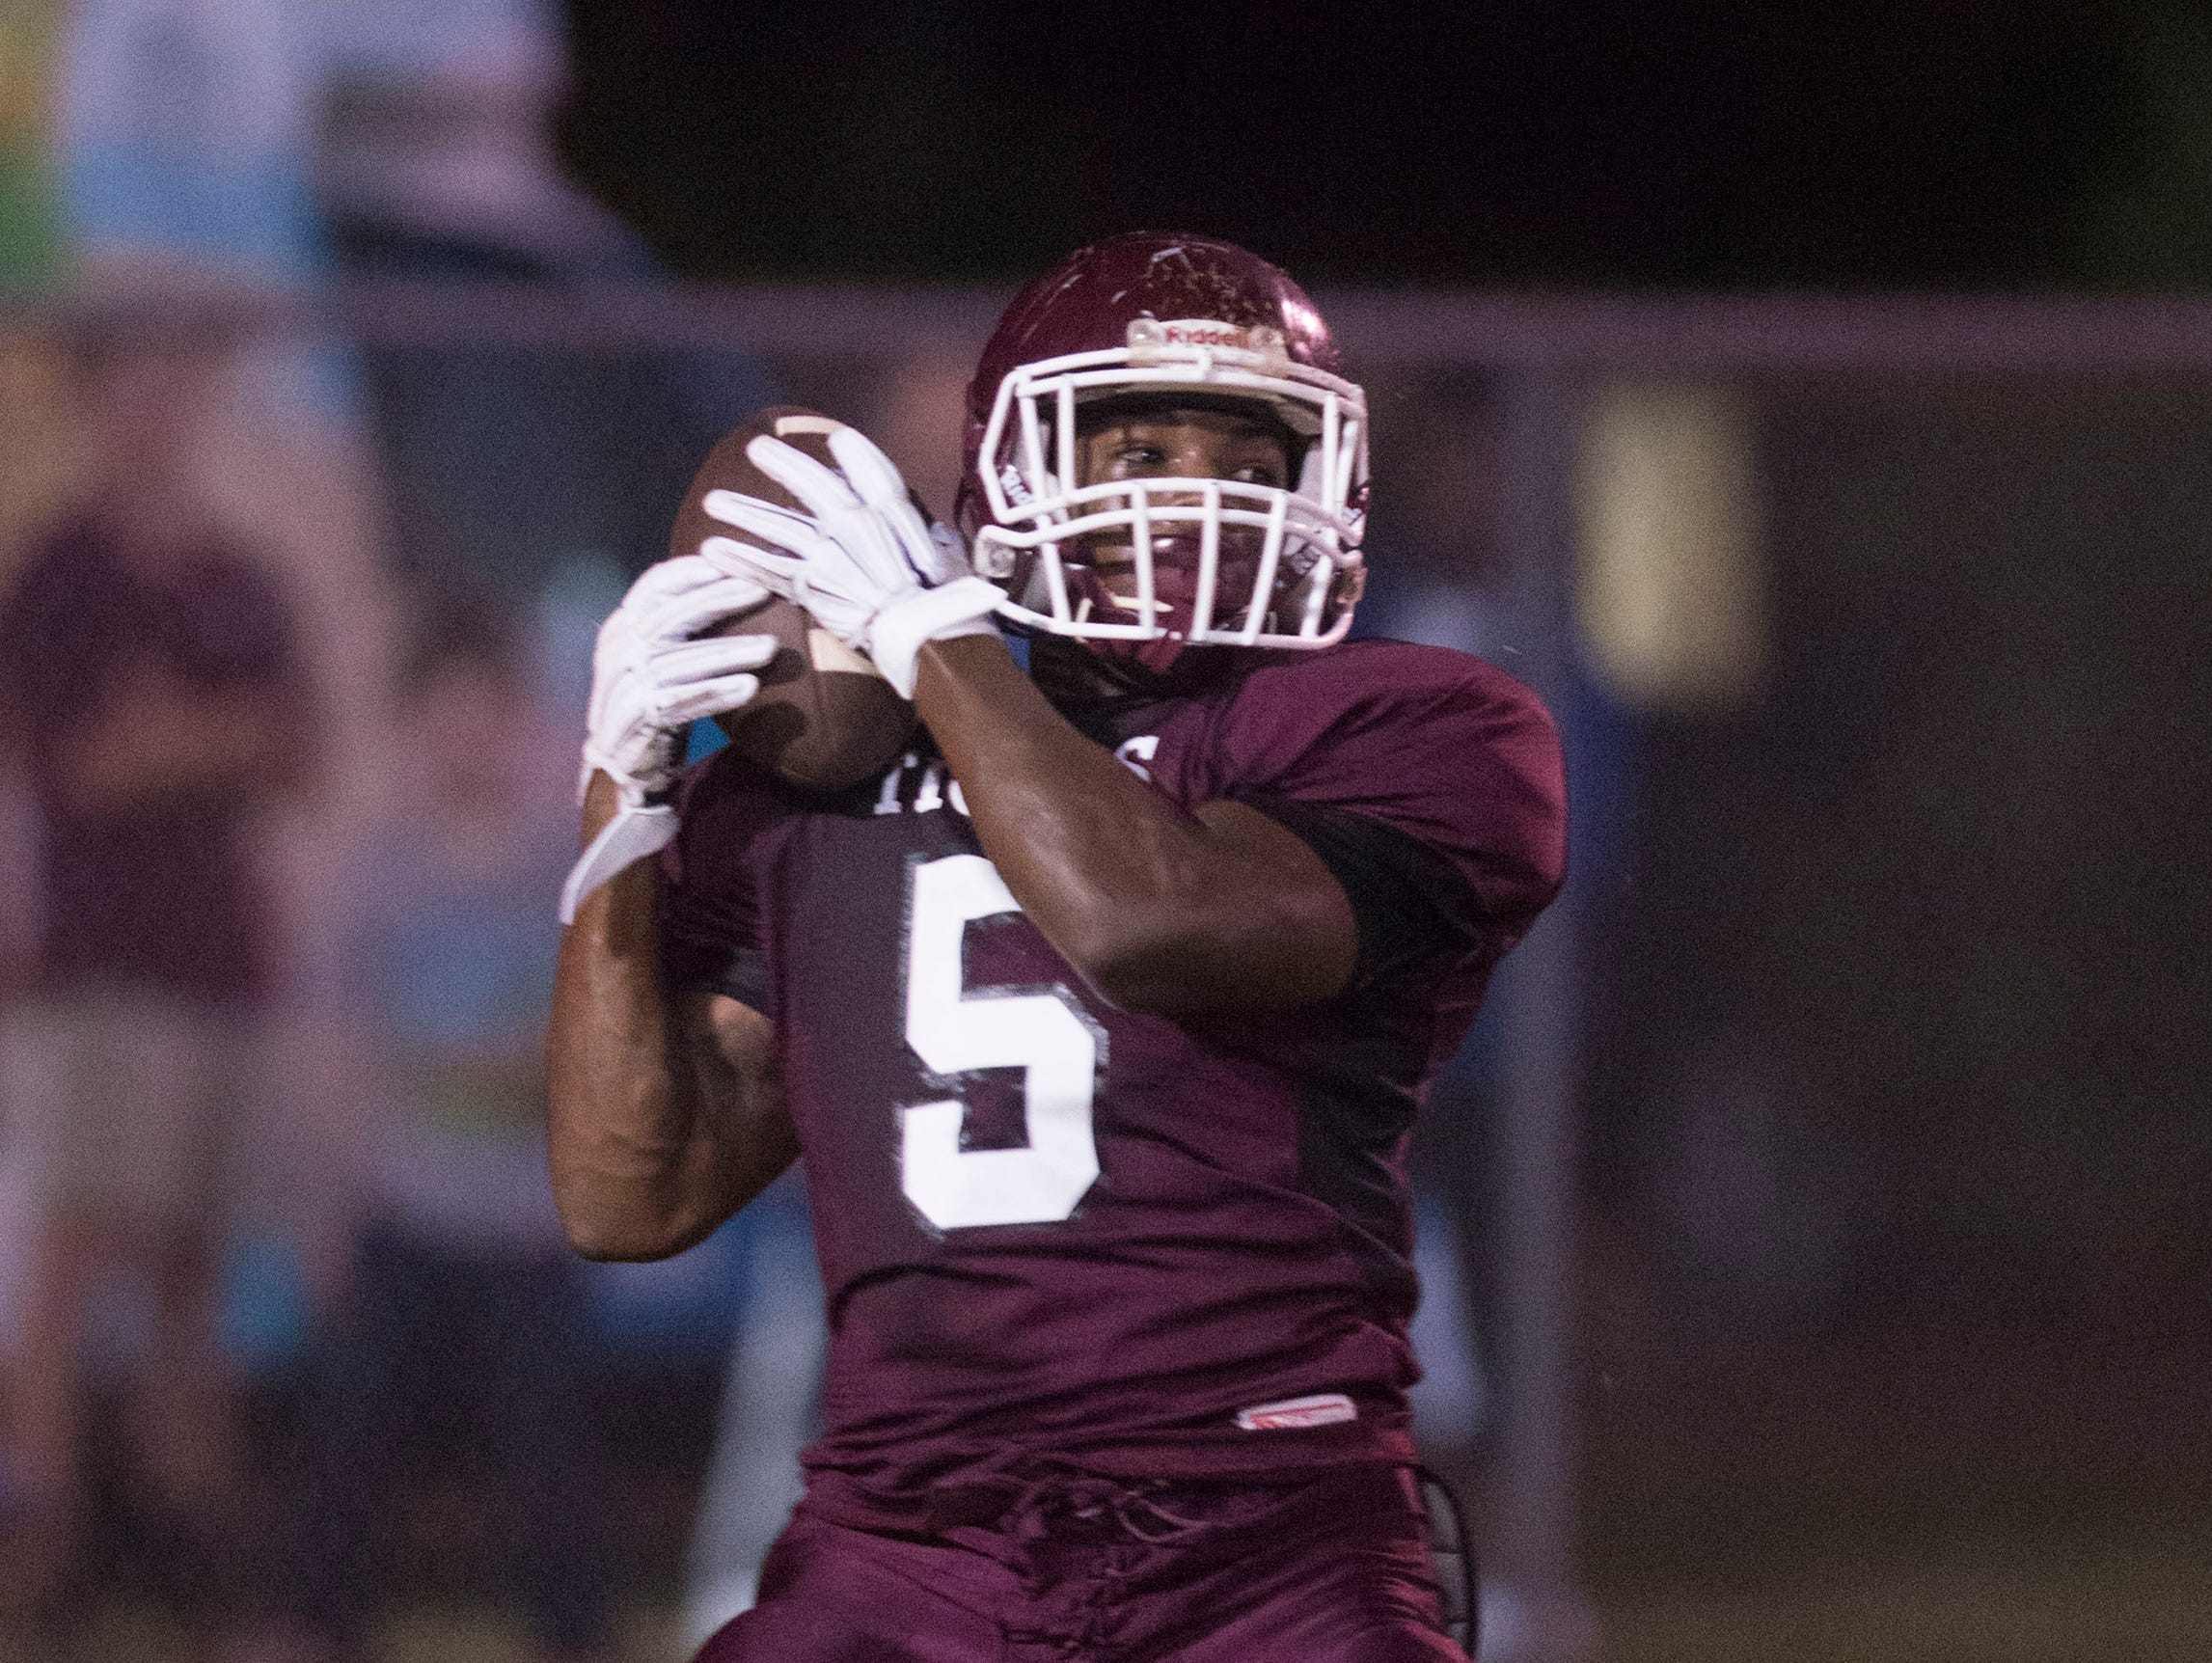 Pensacola High School's Boston Robinson, fight for mishandles a kickoff during Friday night's preseason opener against Tate High School Friday night.